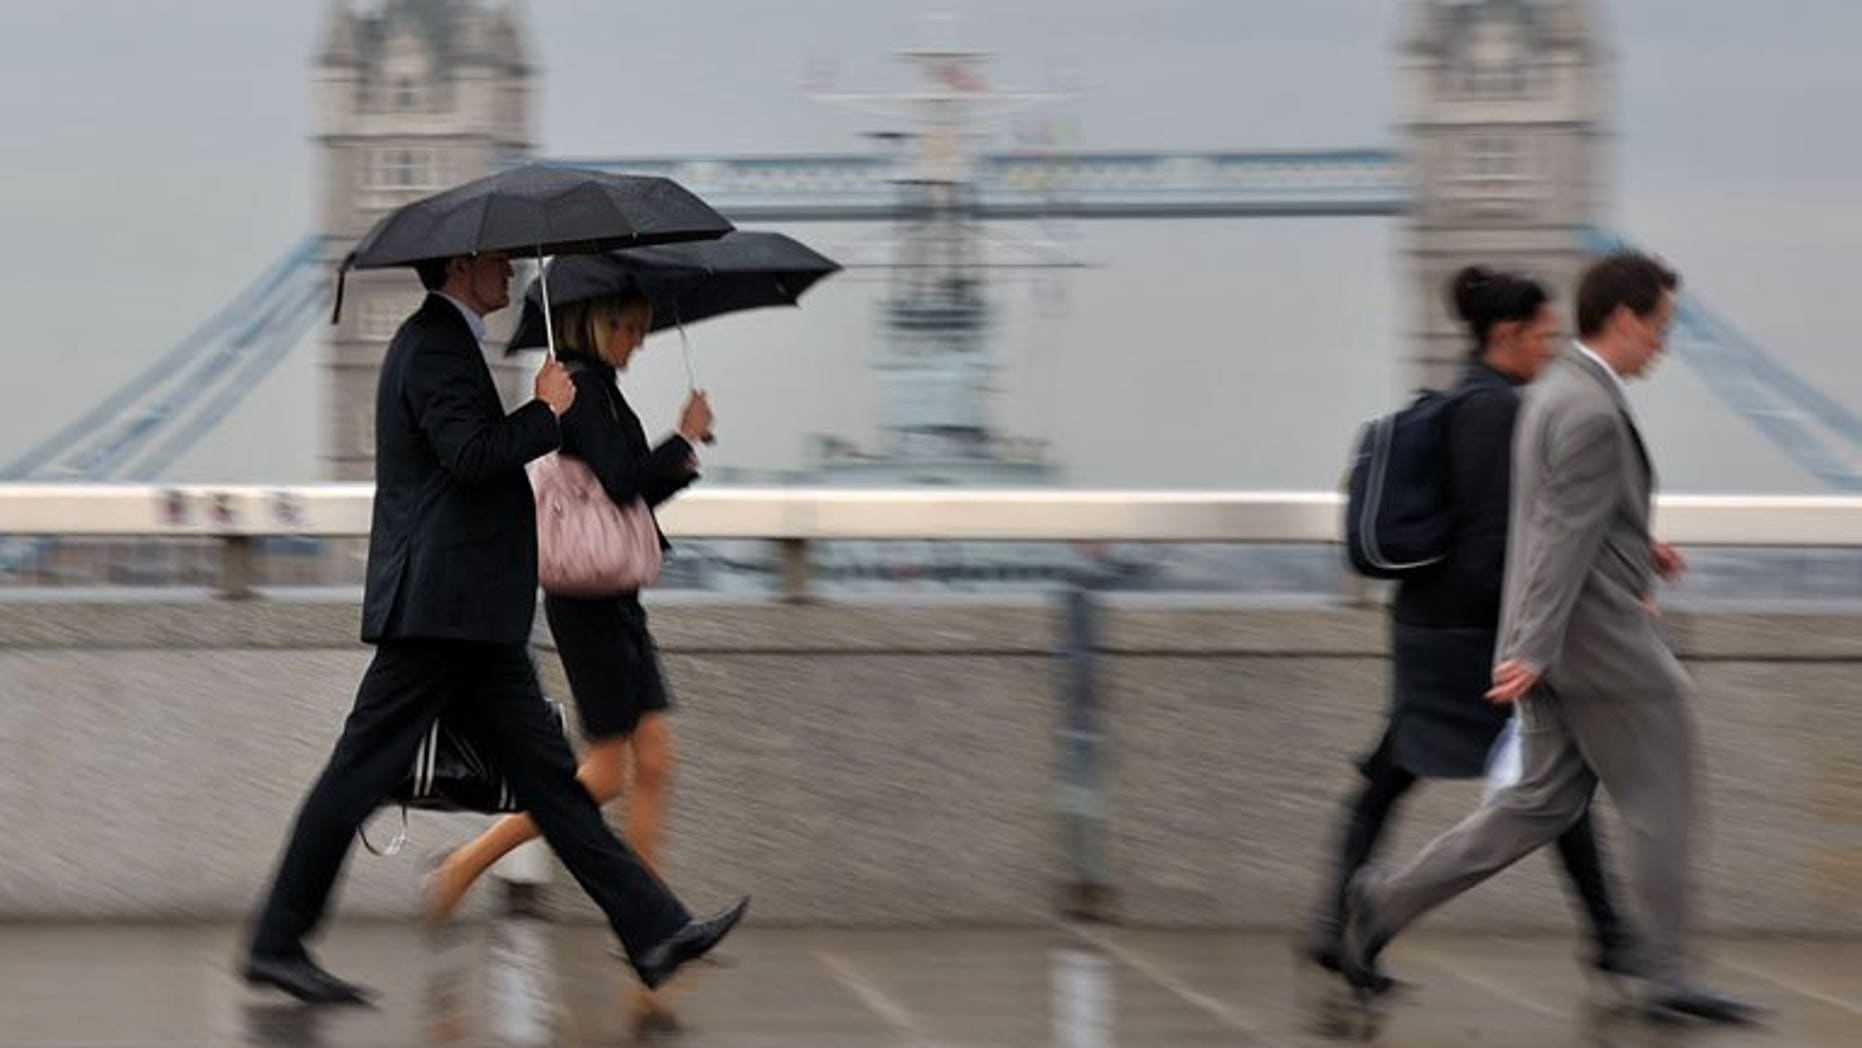 City workers walk over London Bridge. London shares closed steady on Friday, retaining the week's gains, as market heavyweight Vodafone rose after unveiling higher sales for its latest quarter.